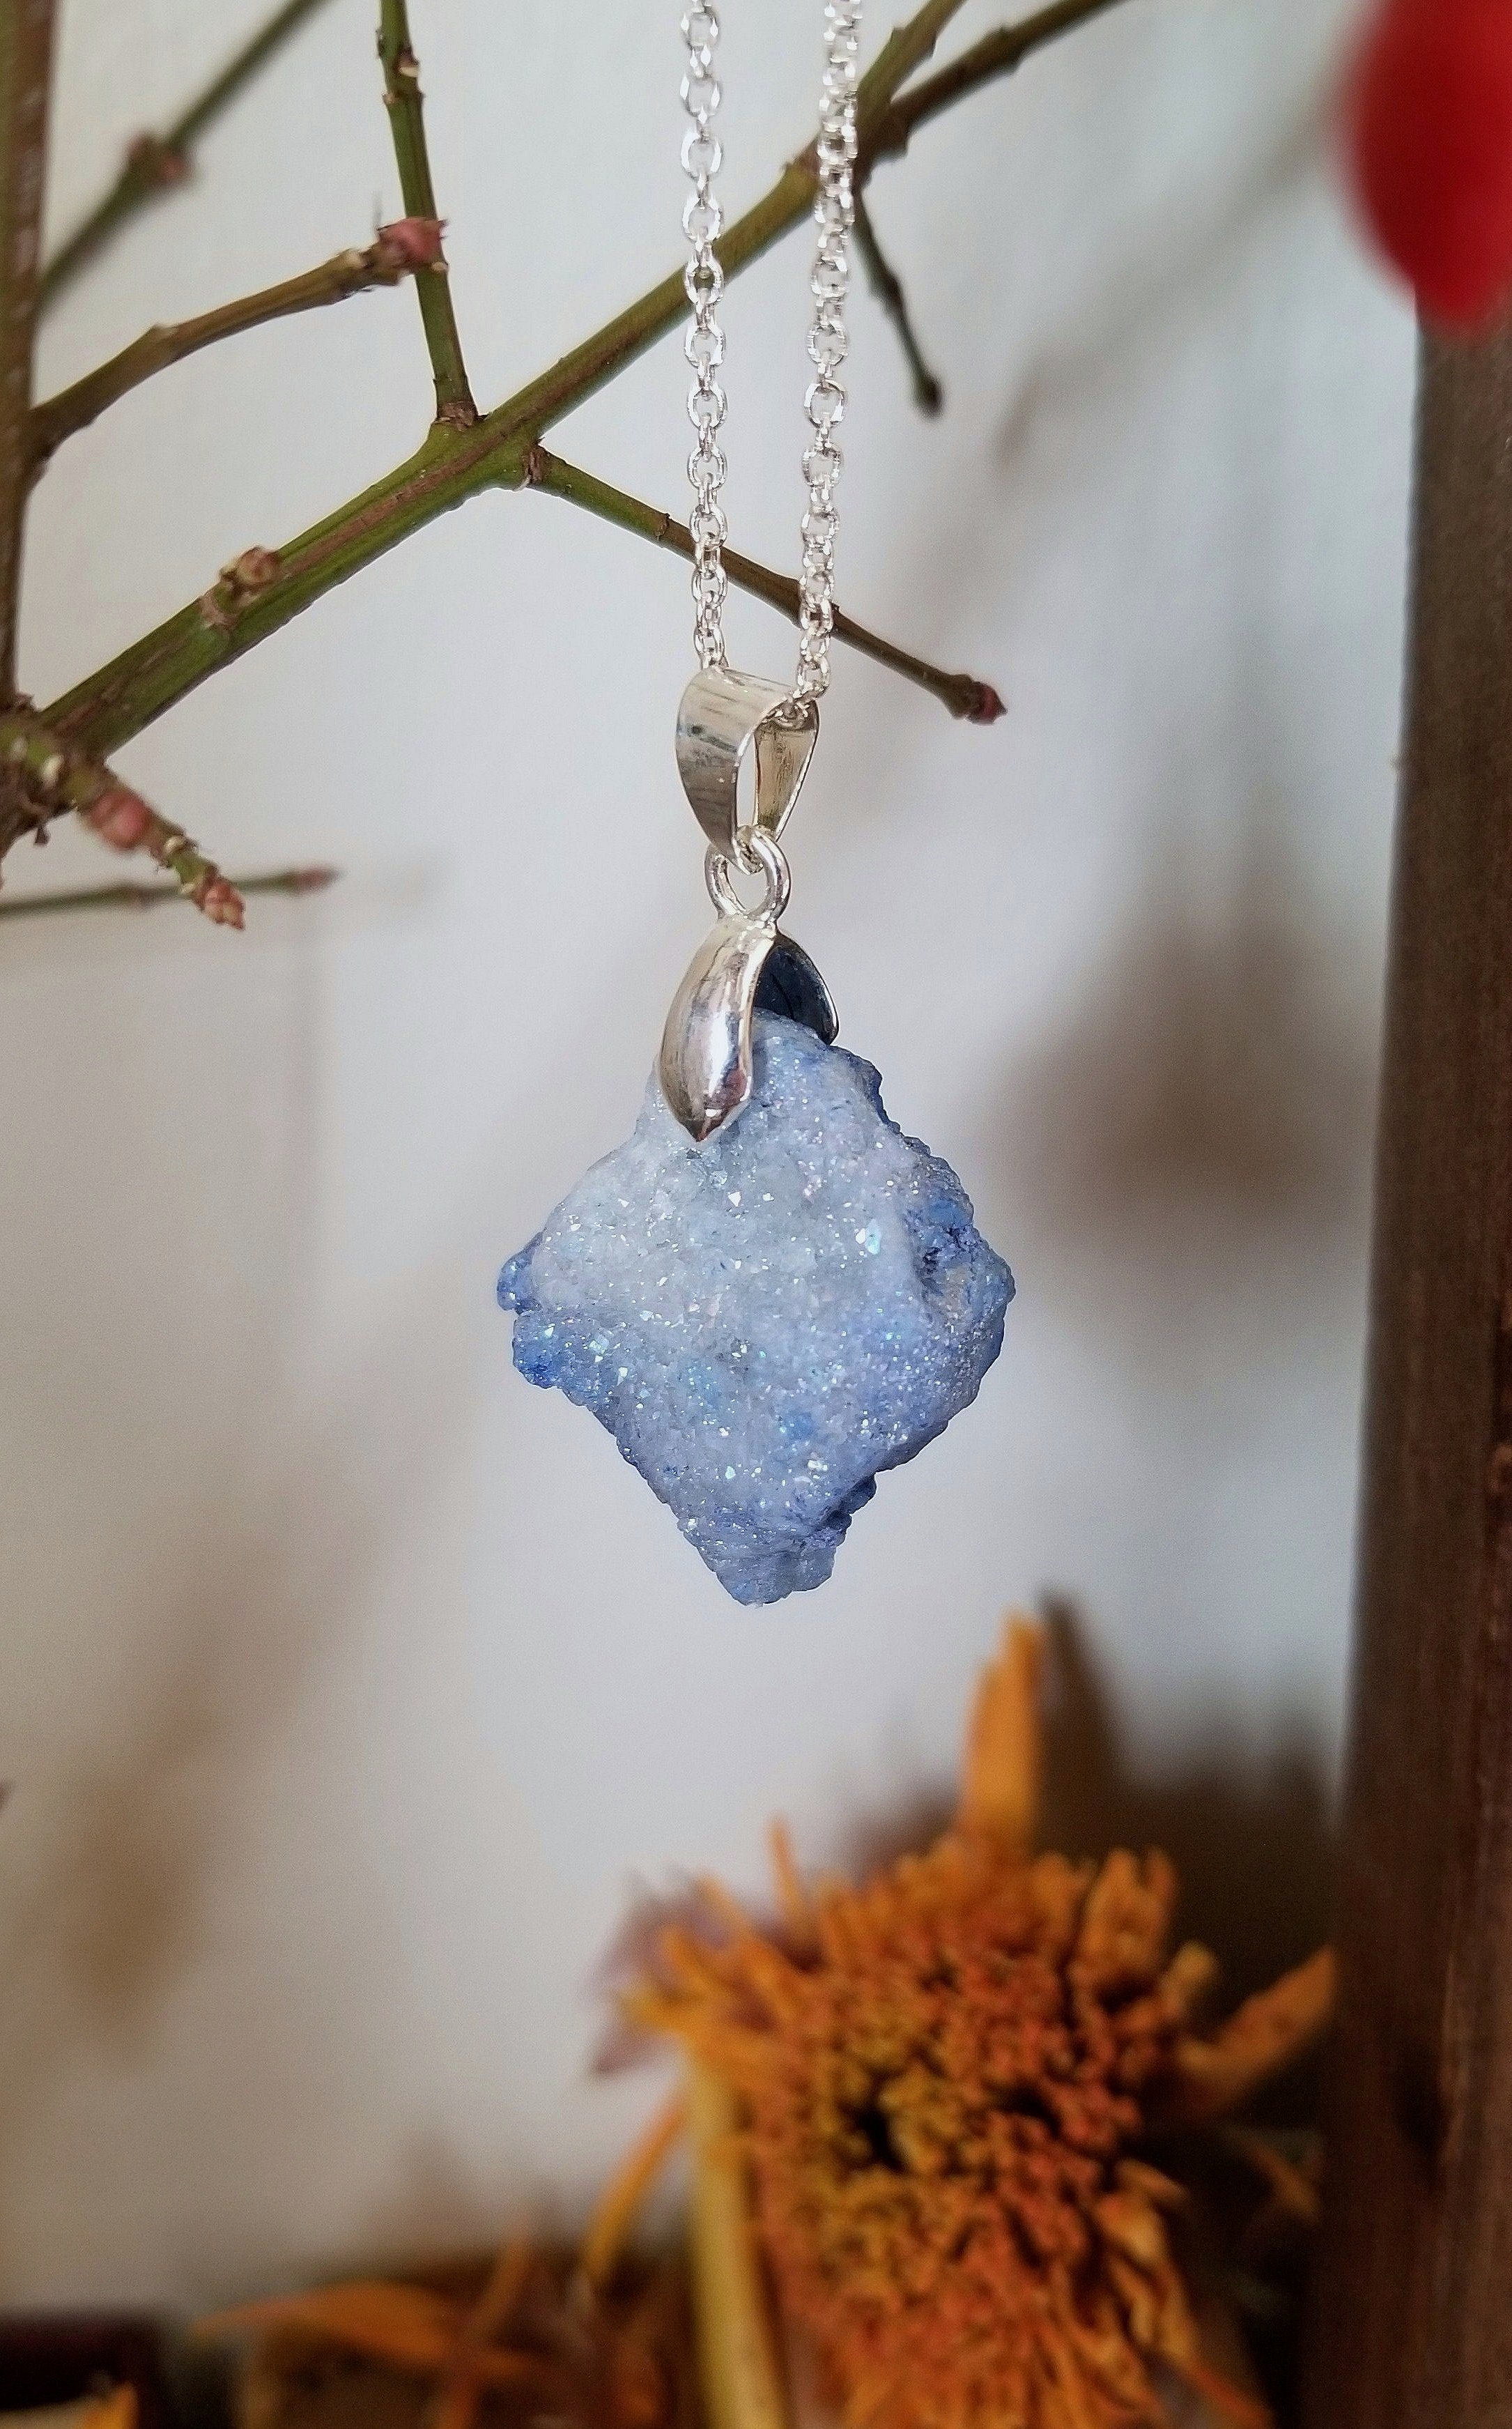 Periwinkle aura quartz pendant with silver plated bail and chain